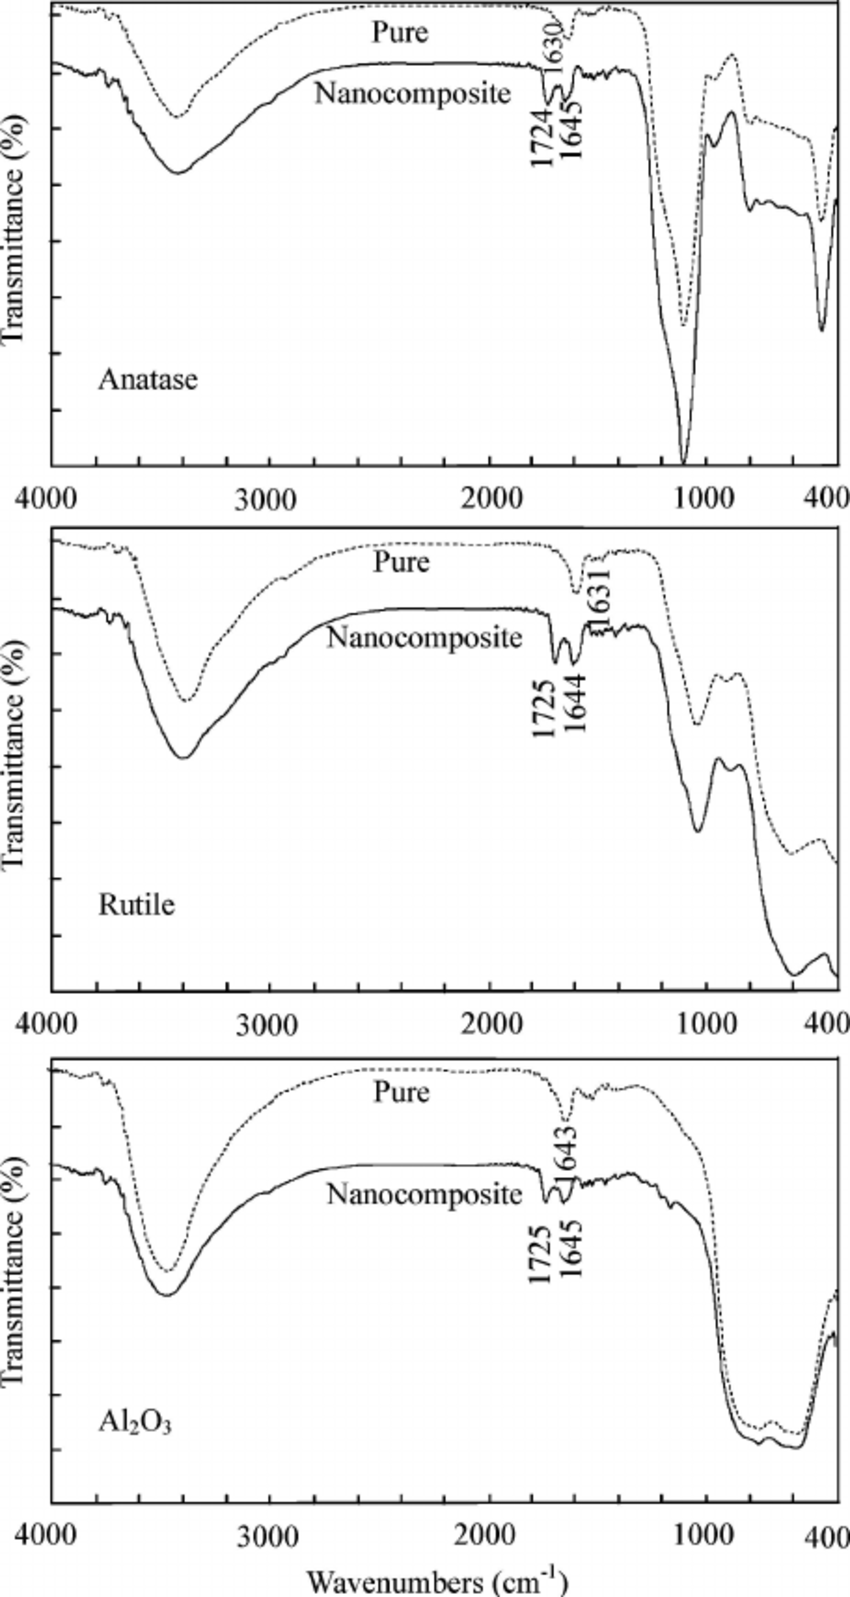 hight resolution of ftir spectra of the pure anatase rutile and al 2 o 3 nanopowders